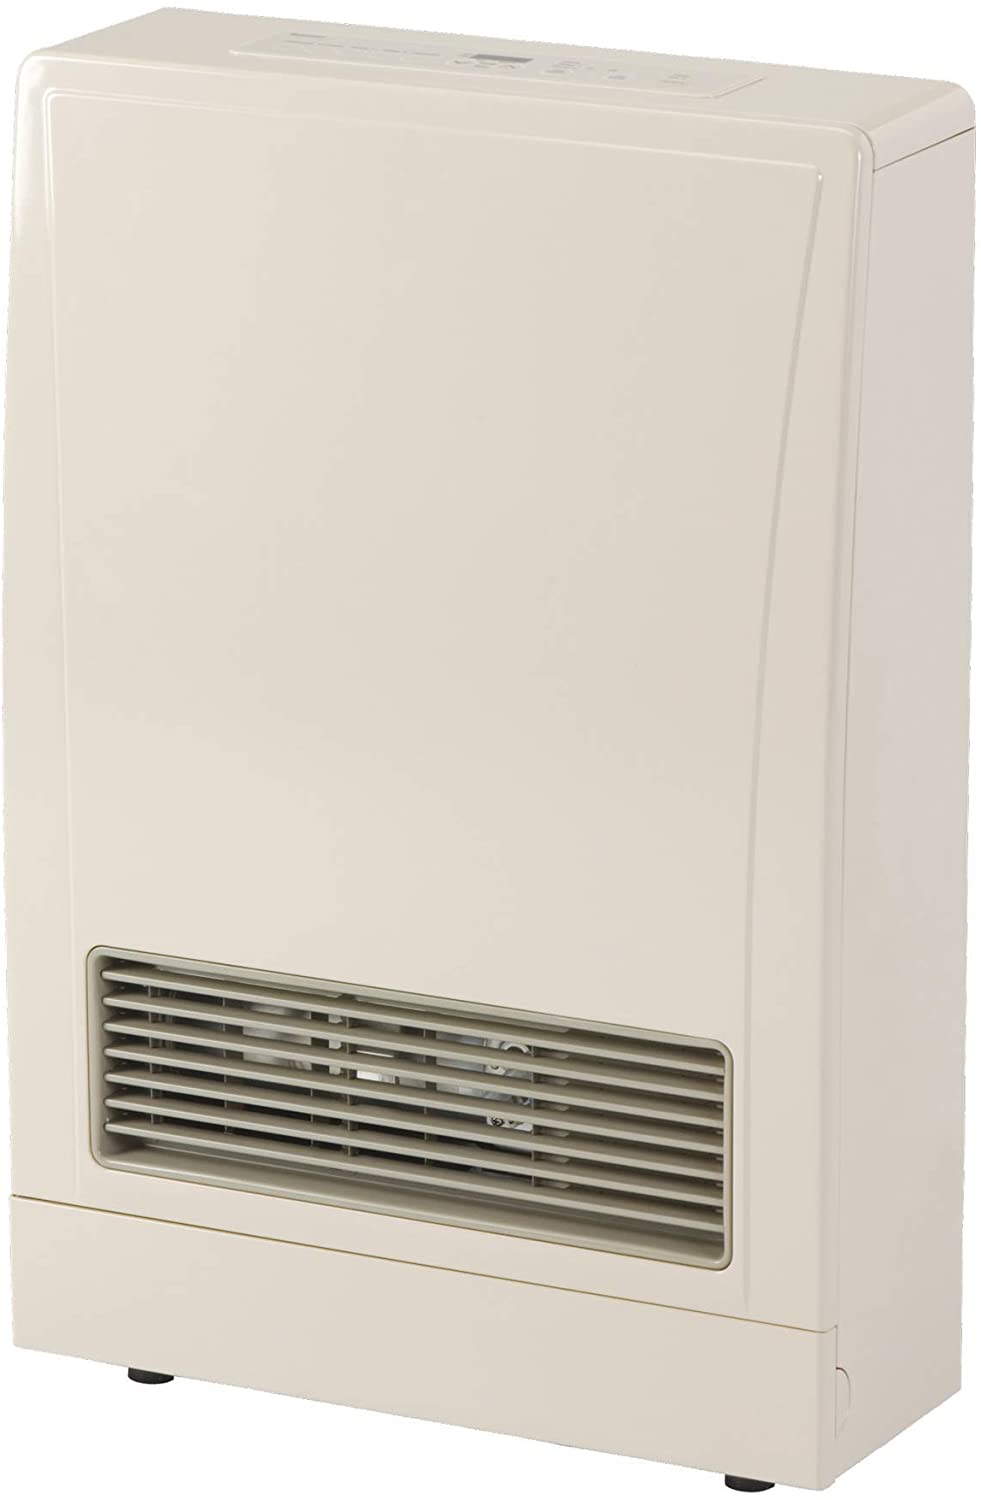 Rinnai EX08CT Direct Vent Wall Furnace